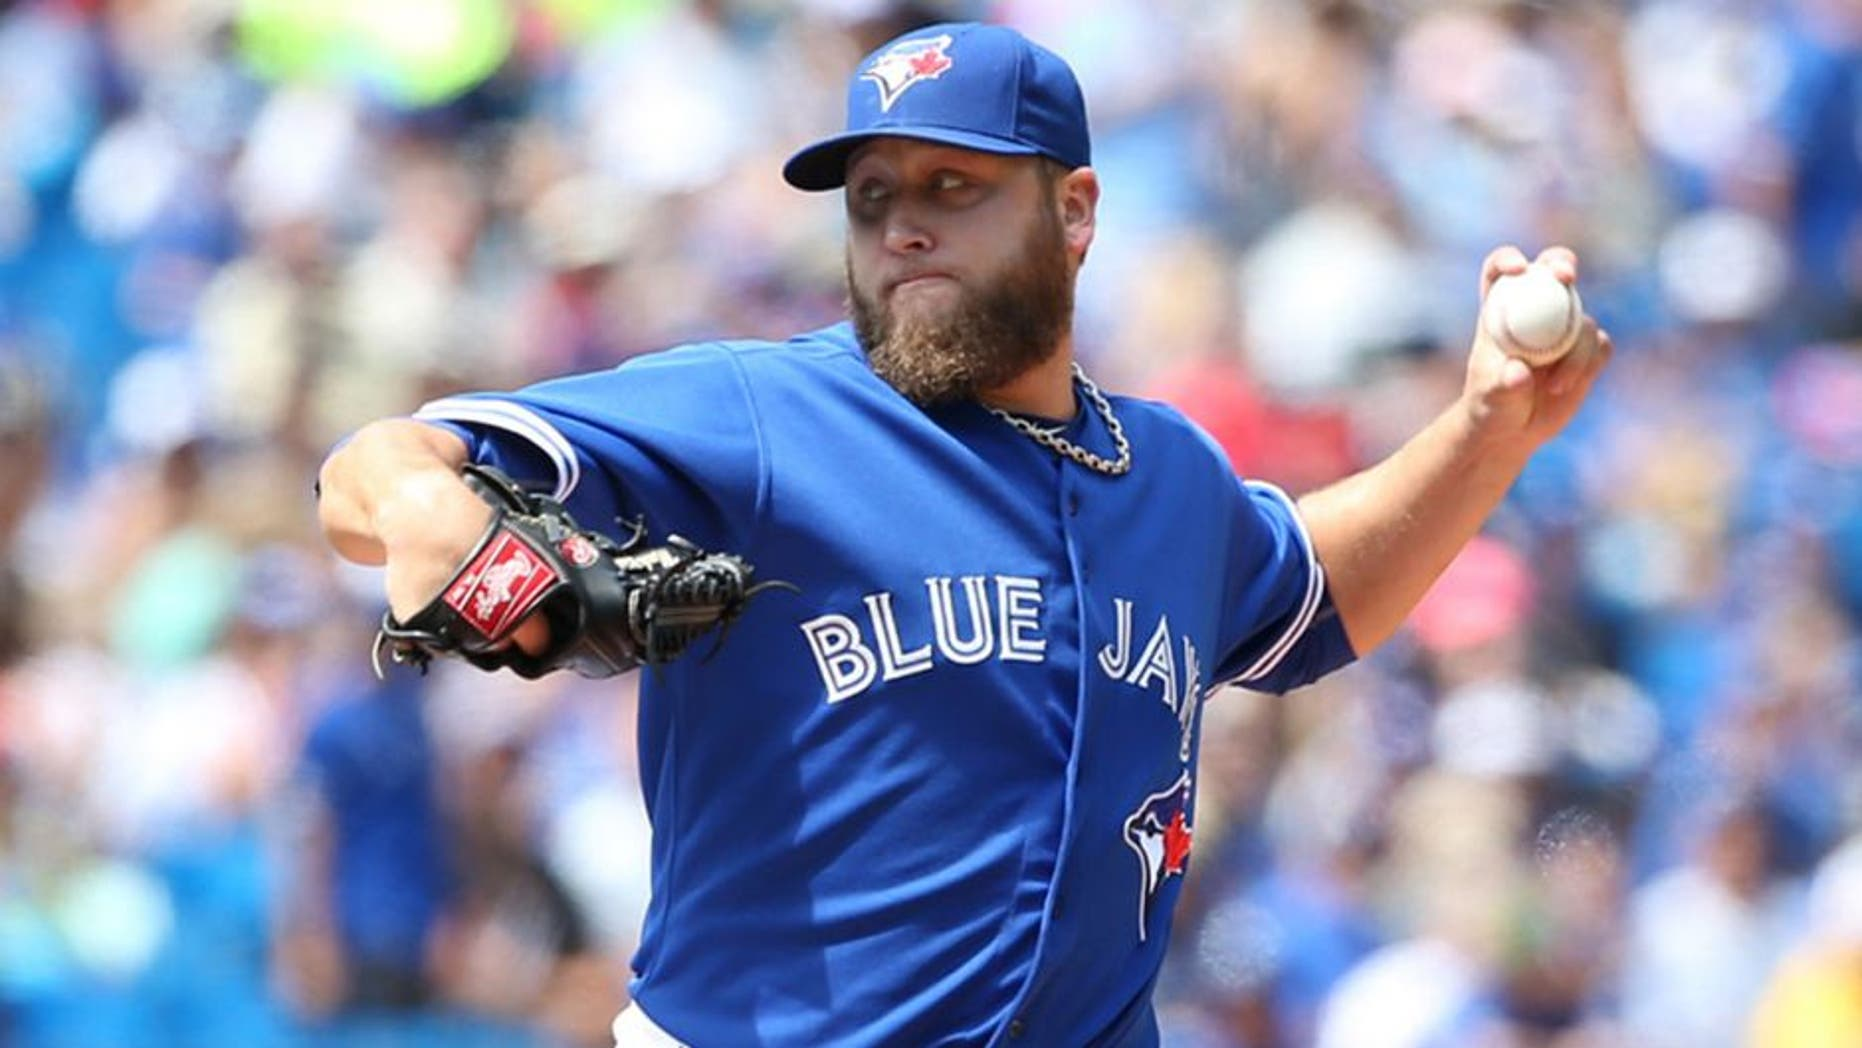 TORONTO, ON- AUGUST 13 Toronto Blue Jays vs Oakland Athletics August 13, 2015 .Toronto Blue Jays Mark Buehrle pitches against the Oakland Athletics at the Rogers Centre. (Vince Talotta/Toronto Star via Getty Images)